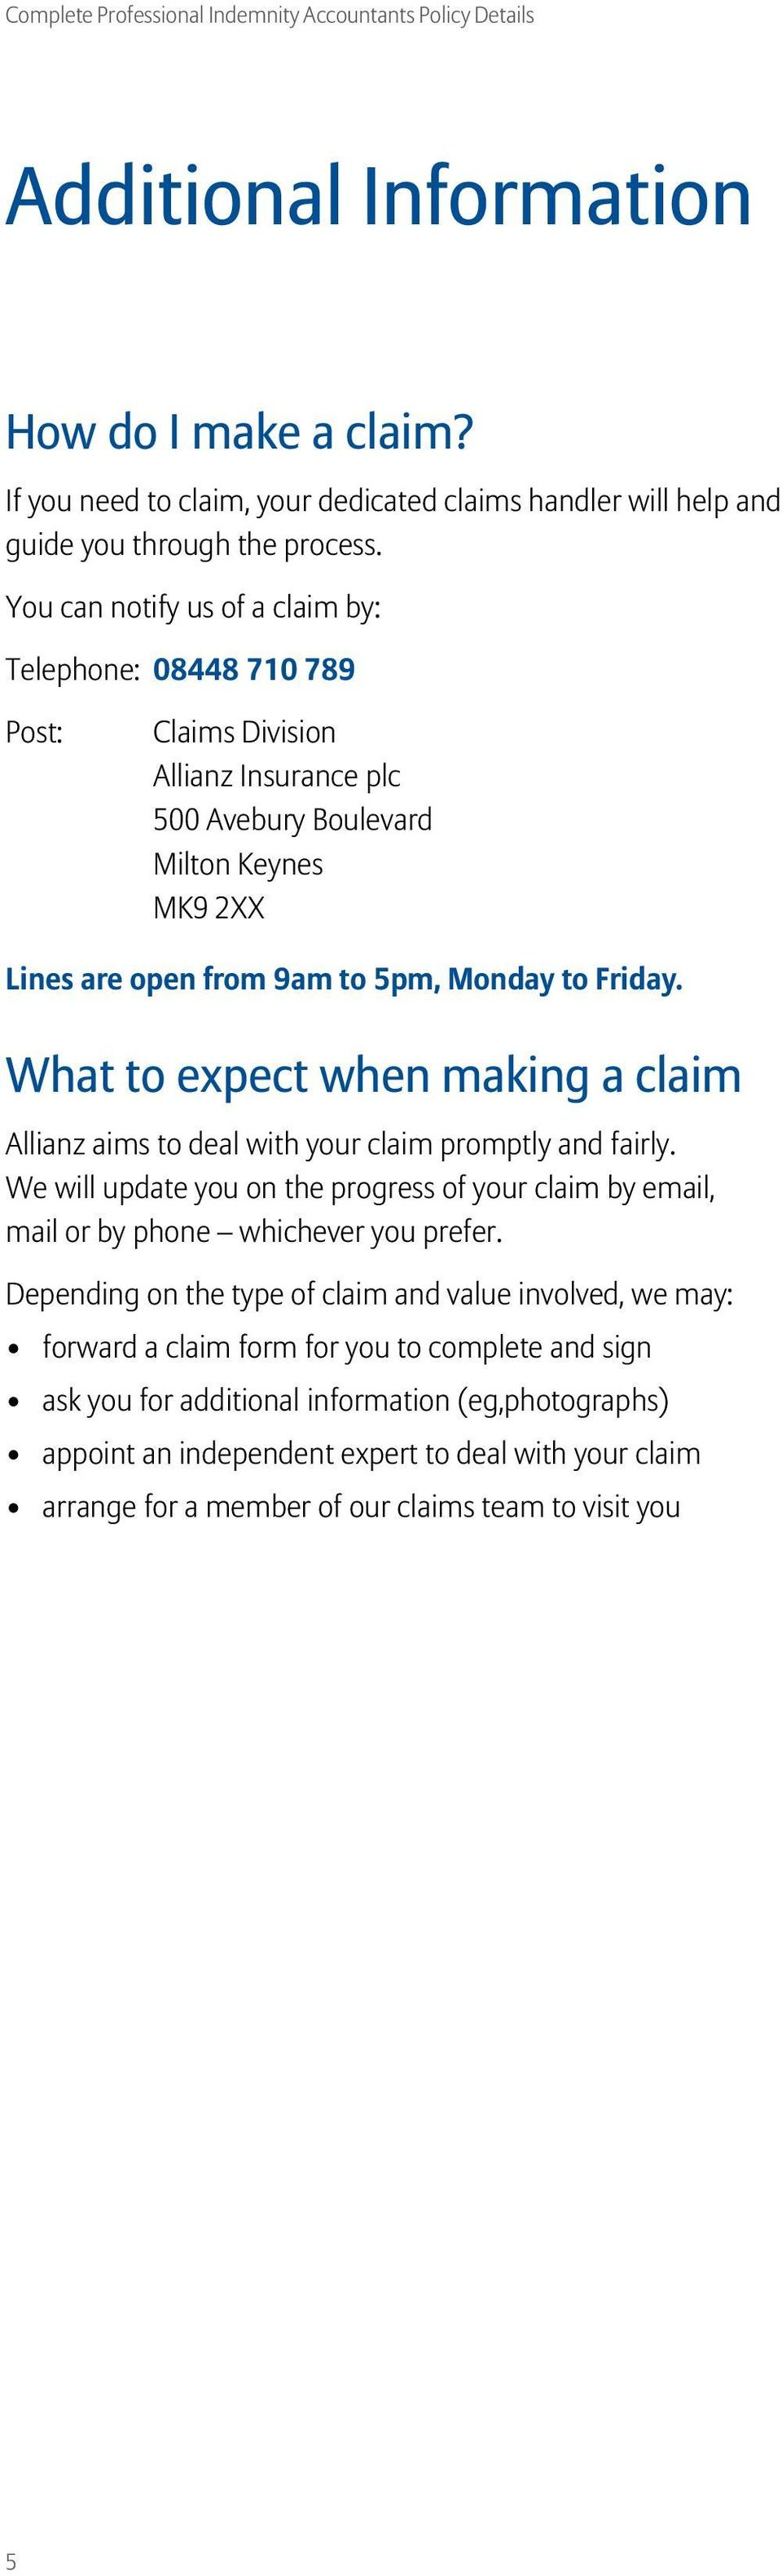 What to expect when making a claim Allianz aims to deal with your claim promptly and fairly. We will update you on the progress of your claim by email, mail or by phone whichever you prefer.